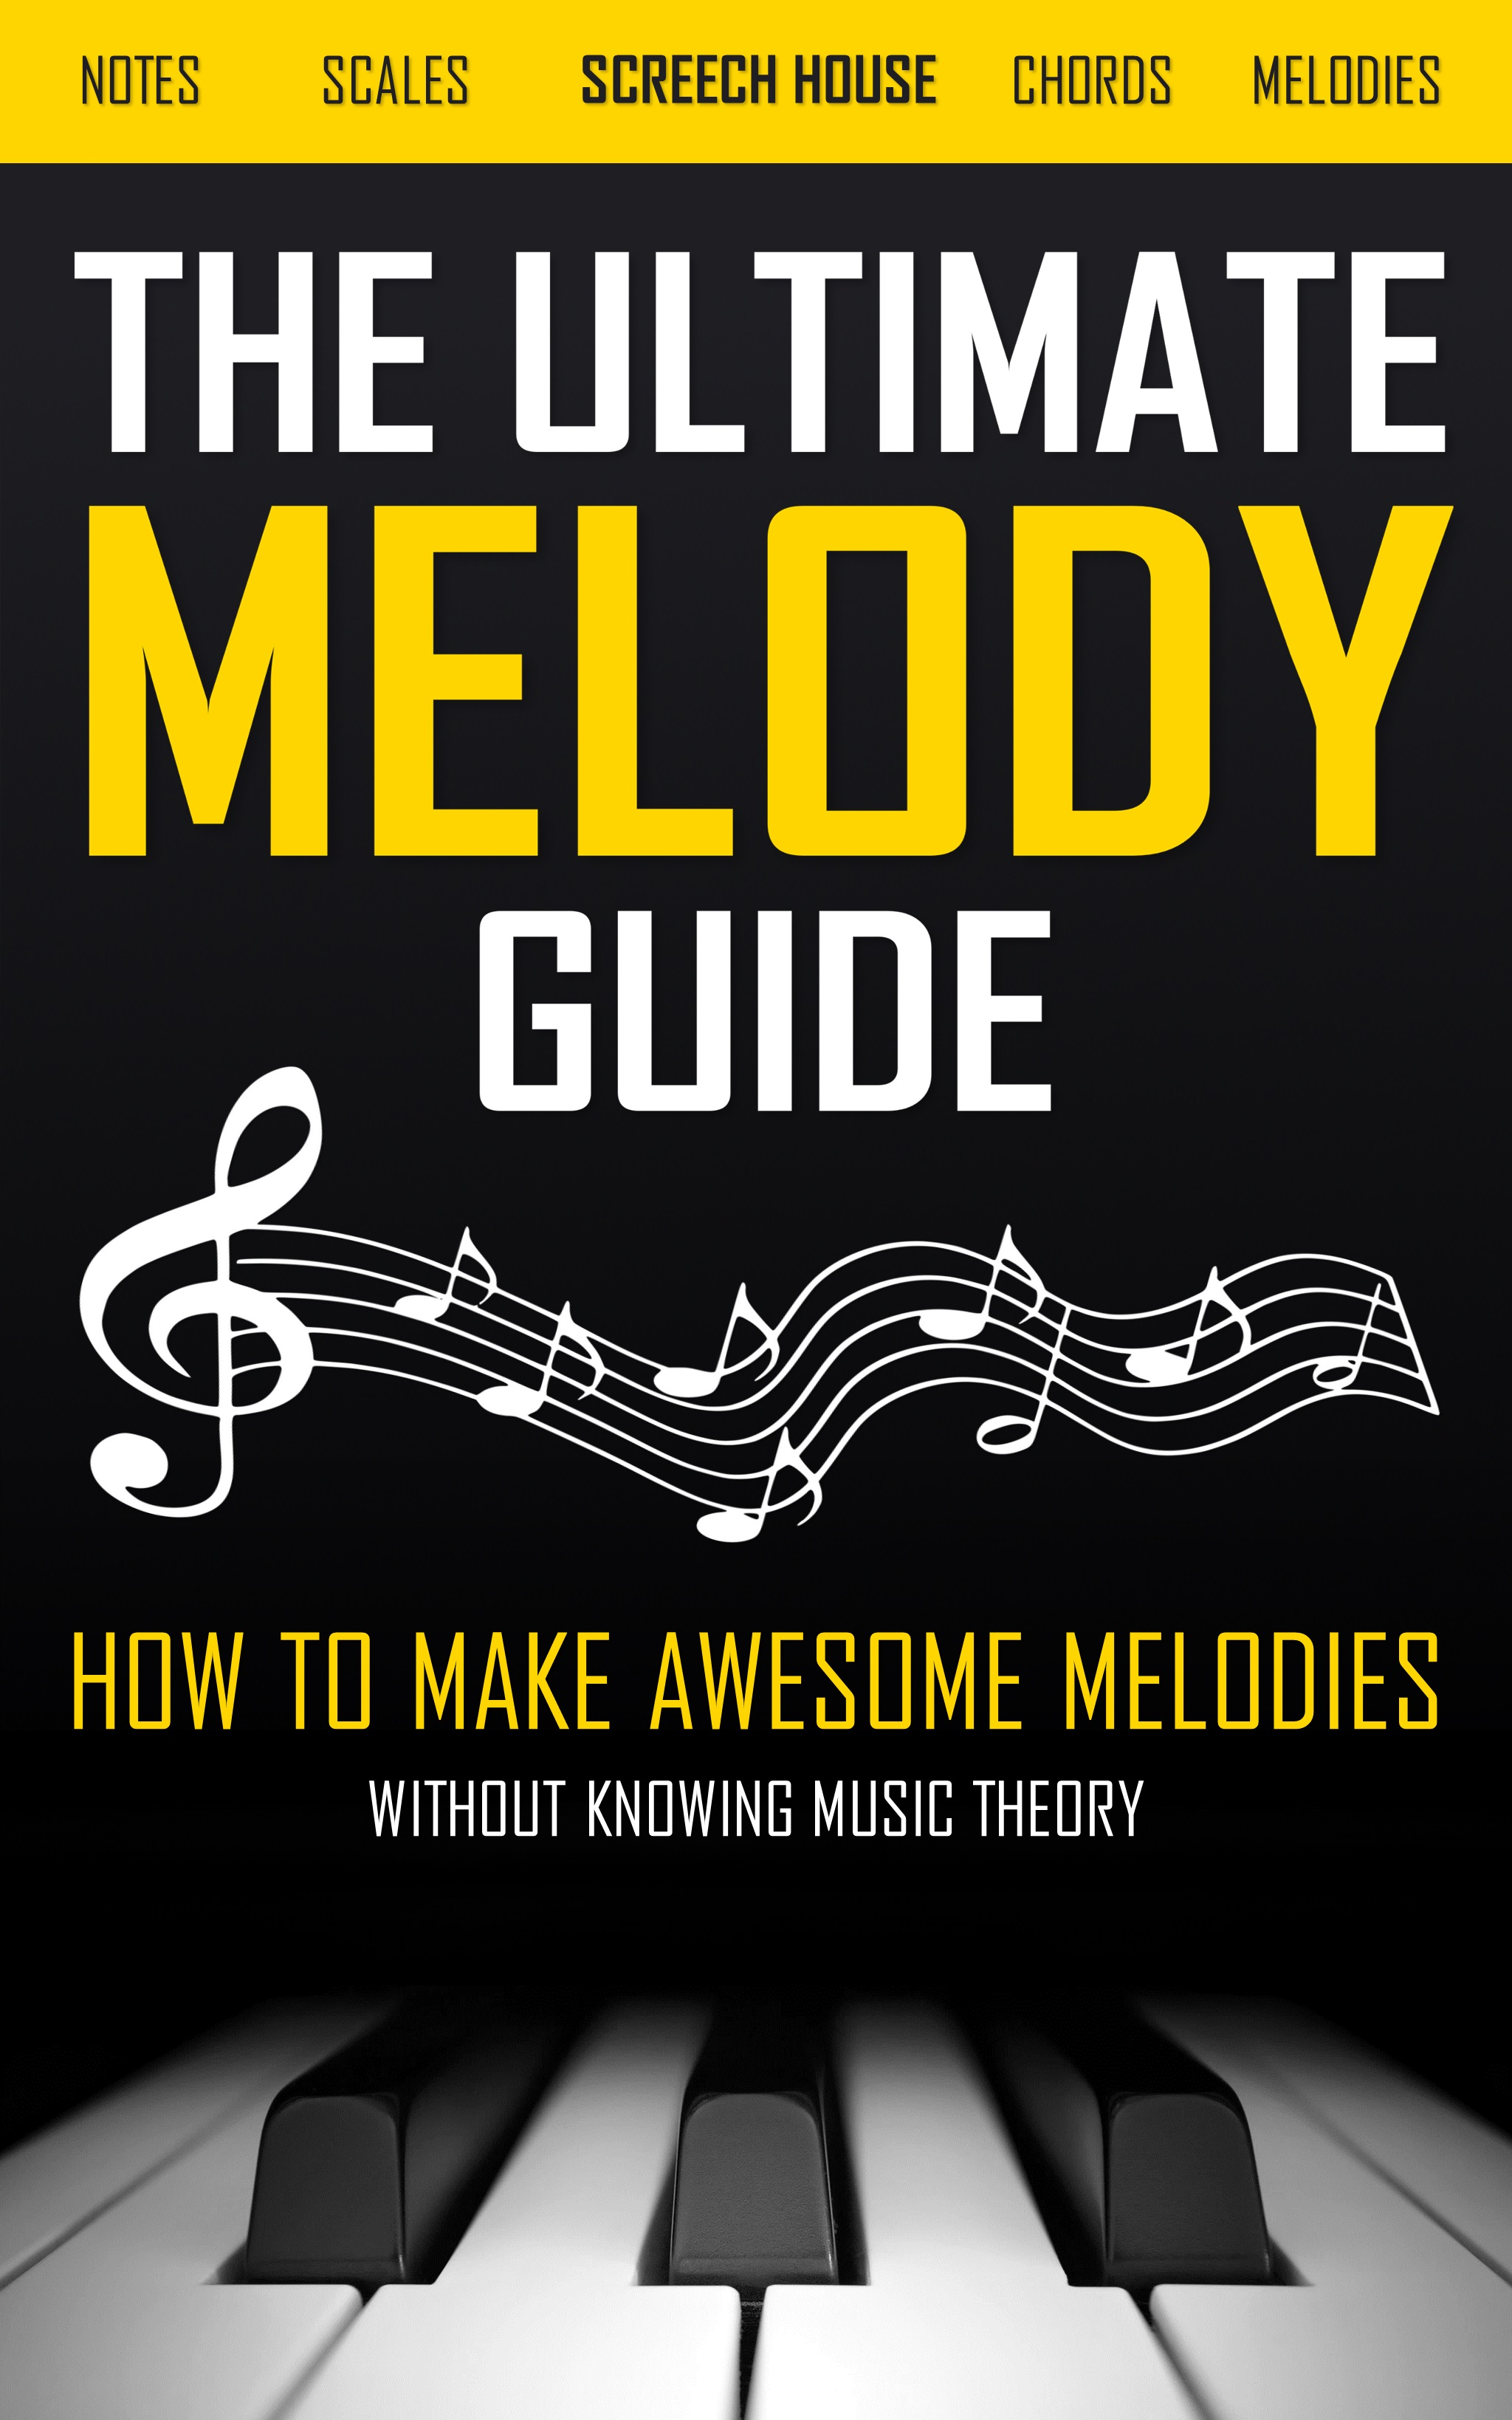 HARDSTYLE MELODY TUTORIAL FL STUDIO | How to Make a Hardstyle Melody